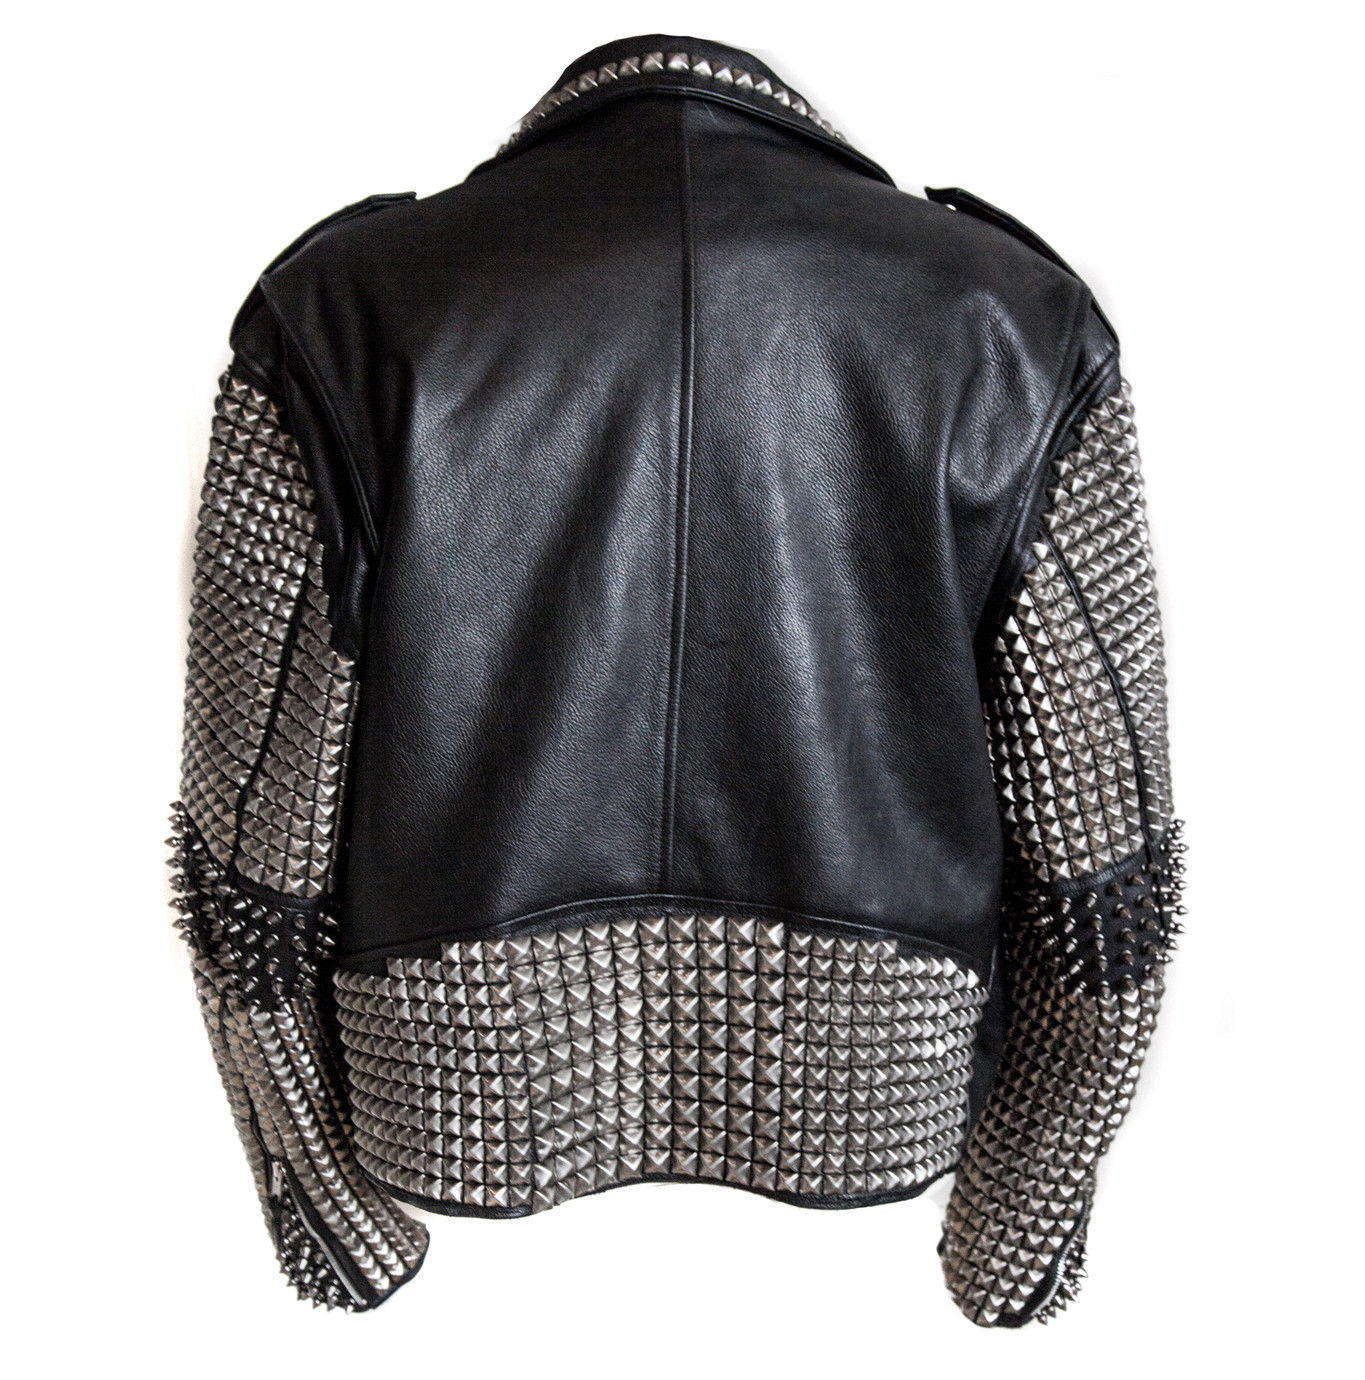 Handmade Men Studded Leather Biker Motorcycle Punk Rocker ...